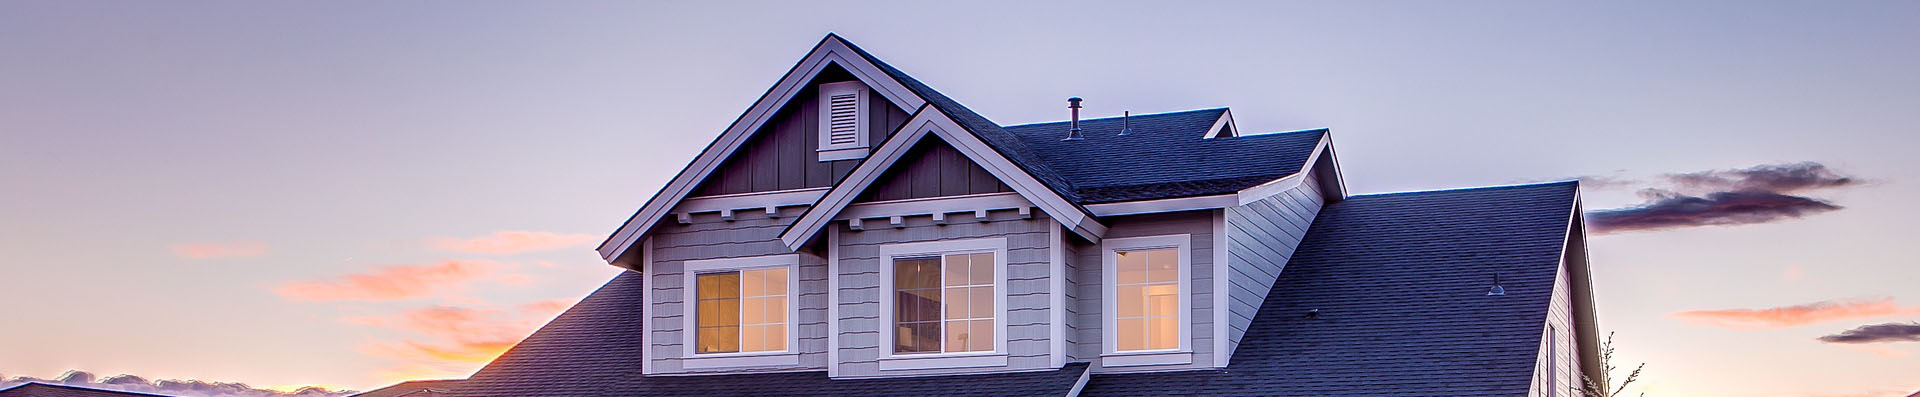 What kind of home insurance do I need when I'm selling my house?